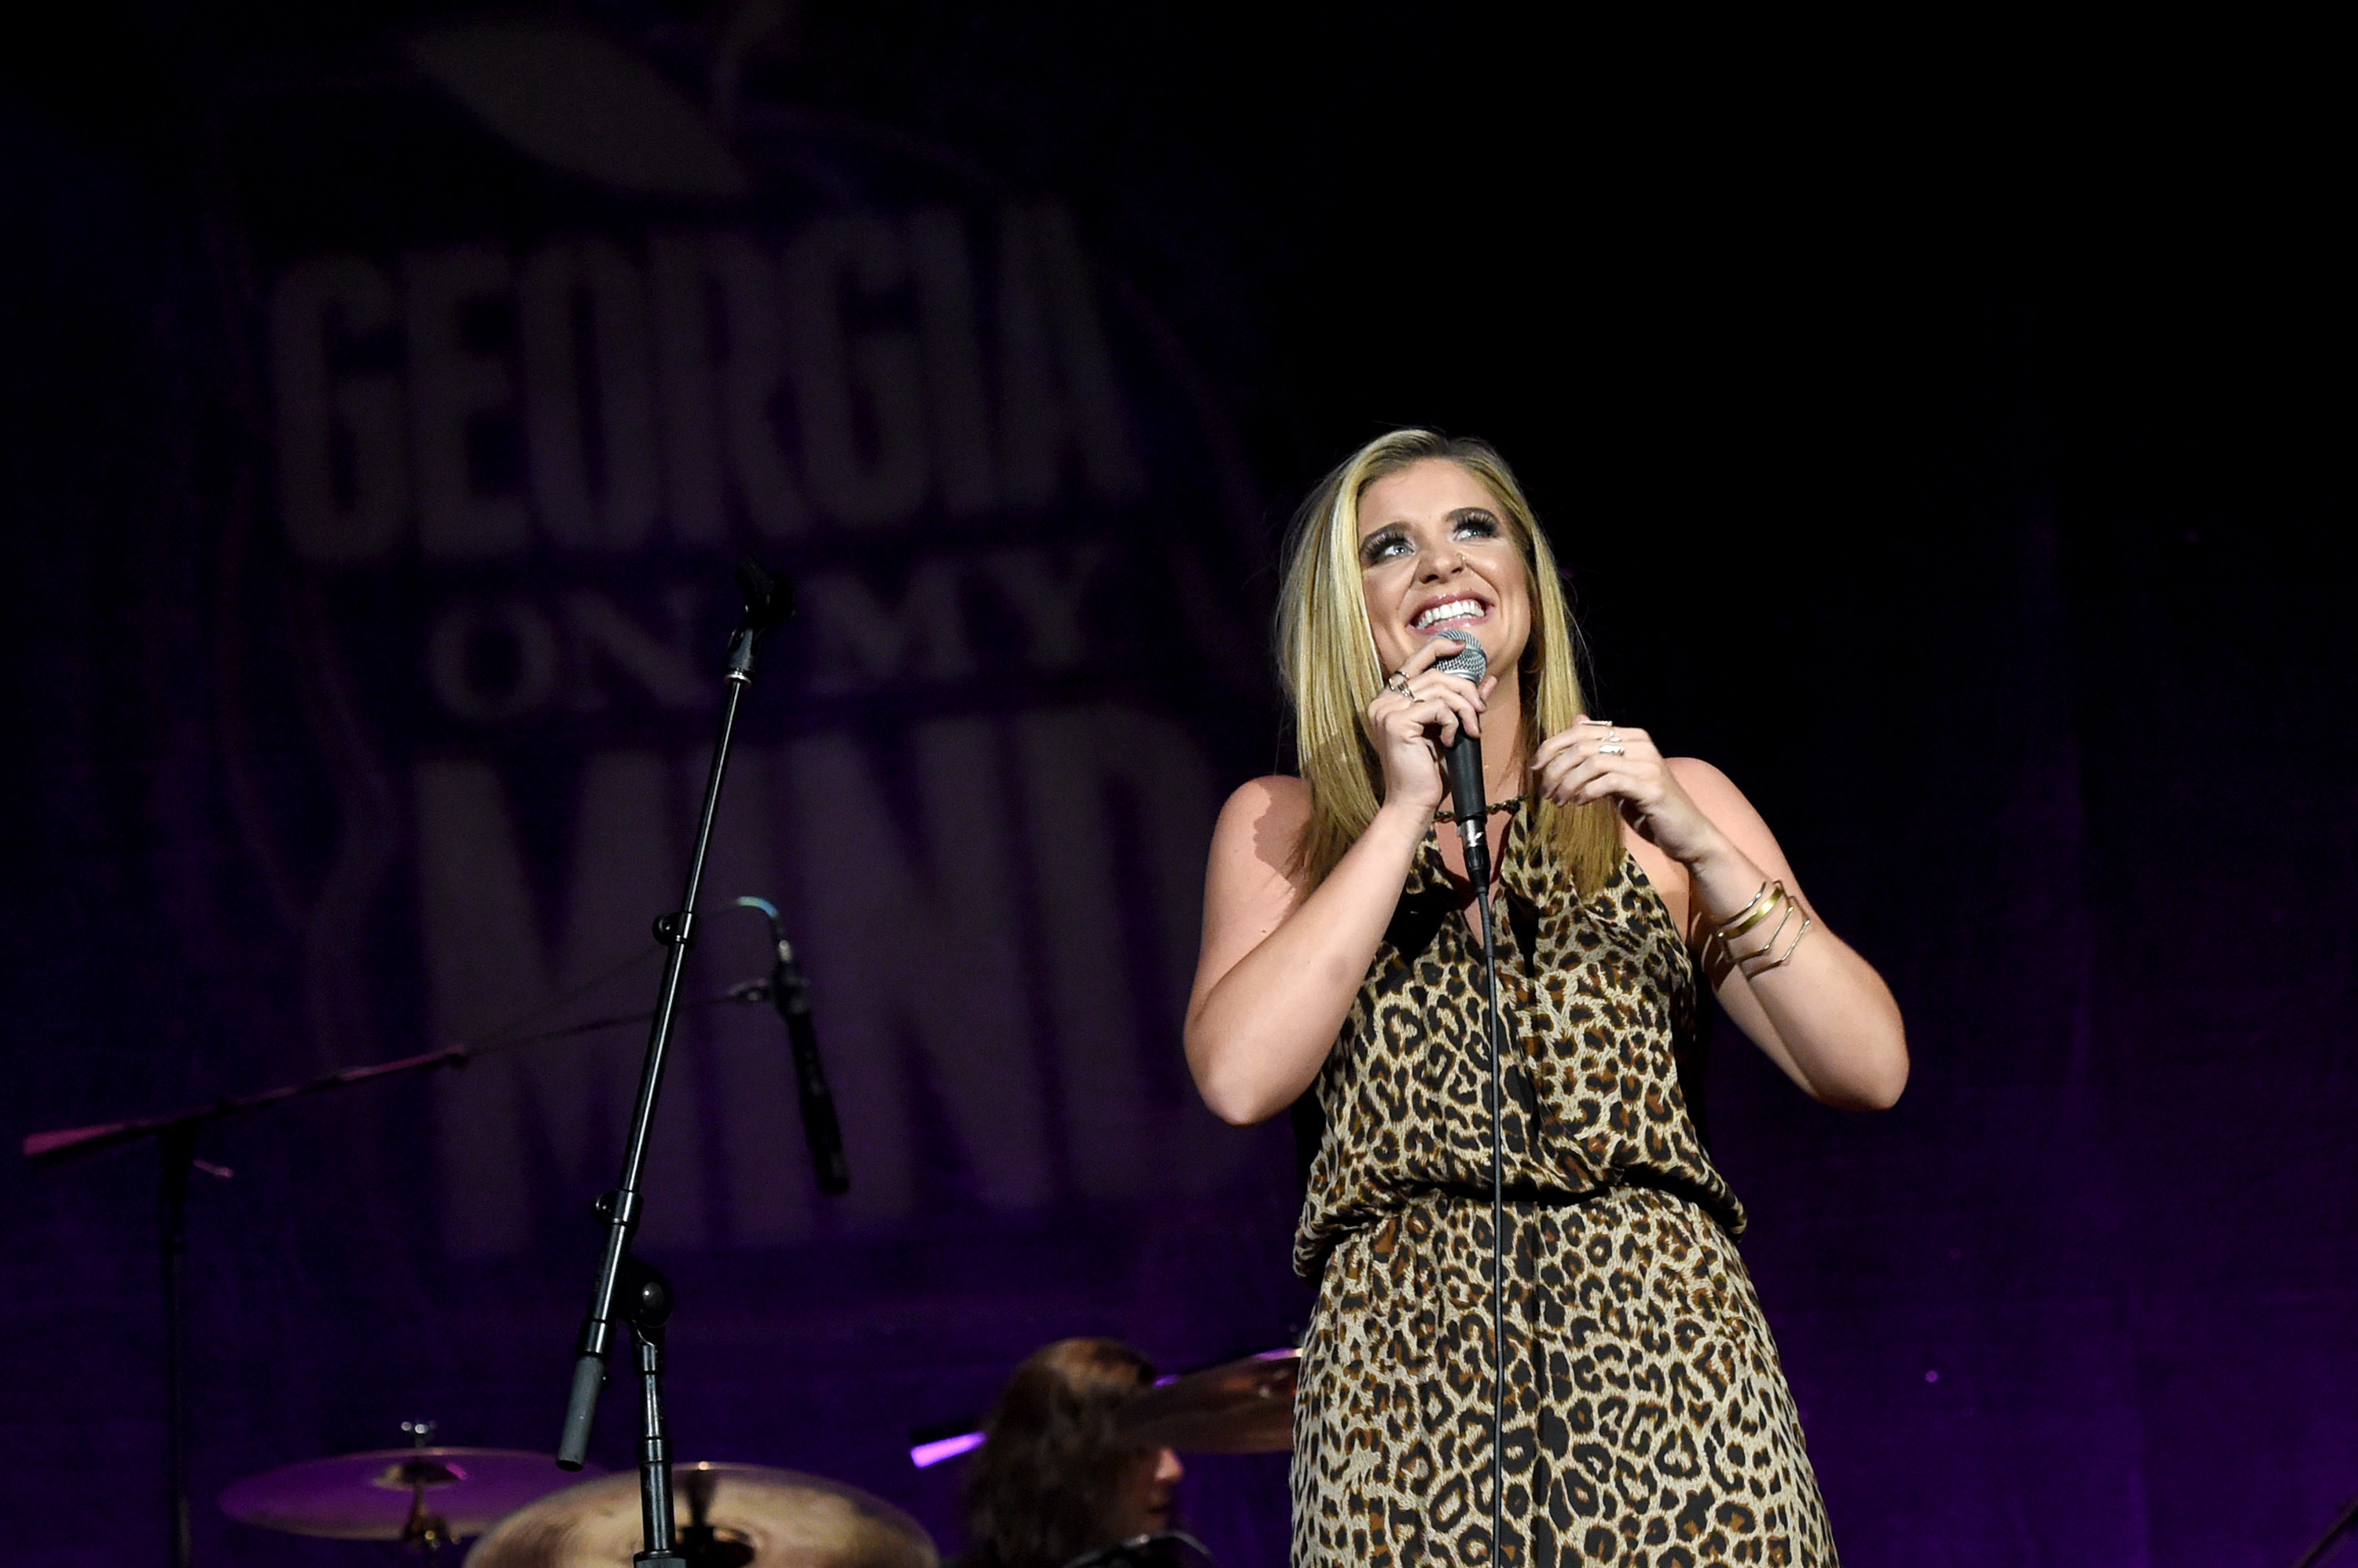 Lauren Alaina; Photo credit: Rick Diamond for Getty Images